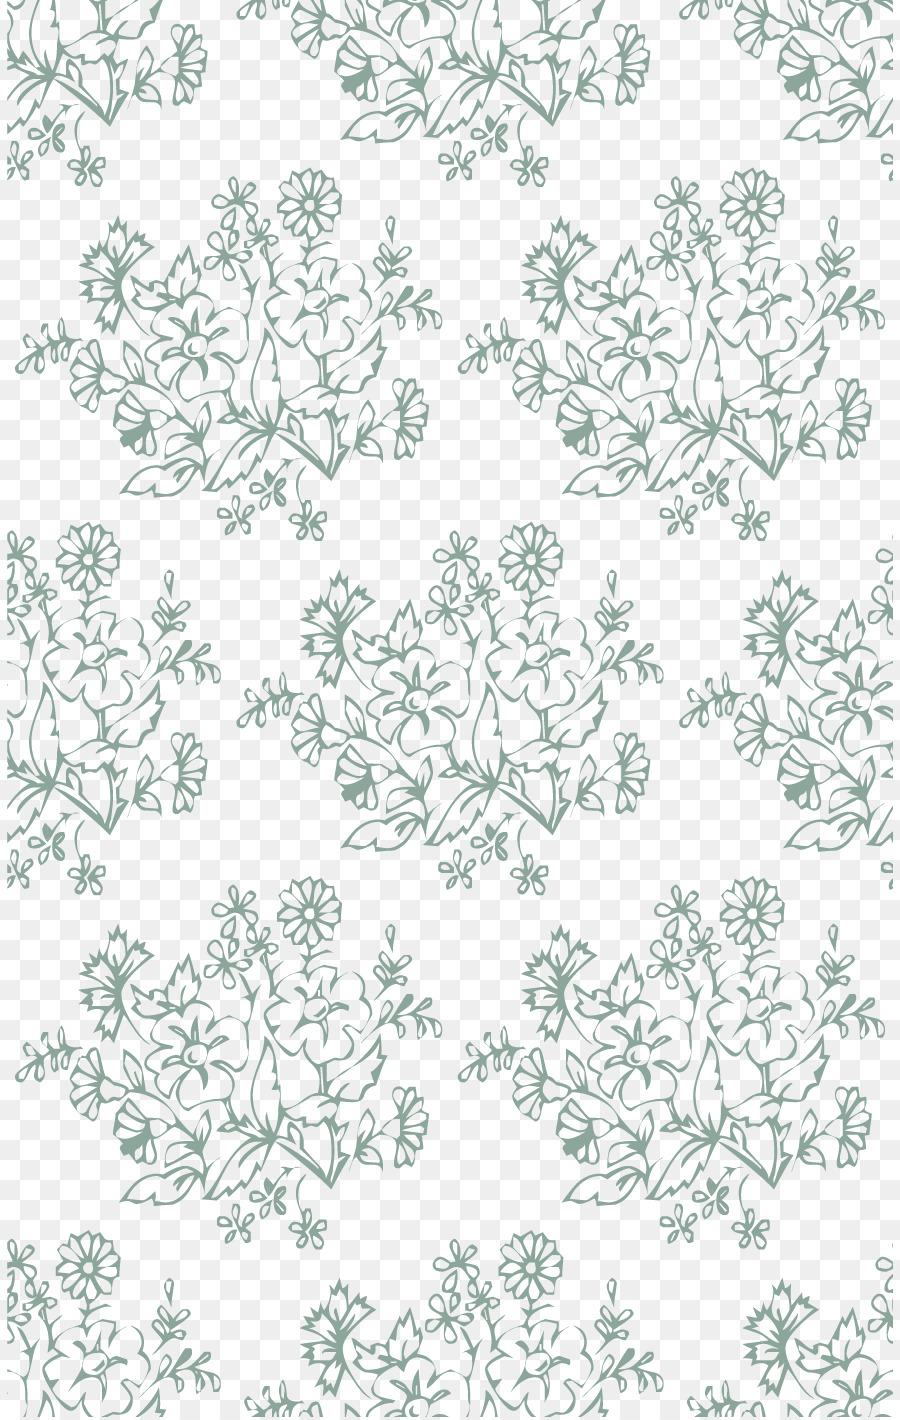 Black and white pattern vector flowers background design png black and white pattern vector flowers background design mightylinksfo